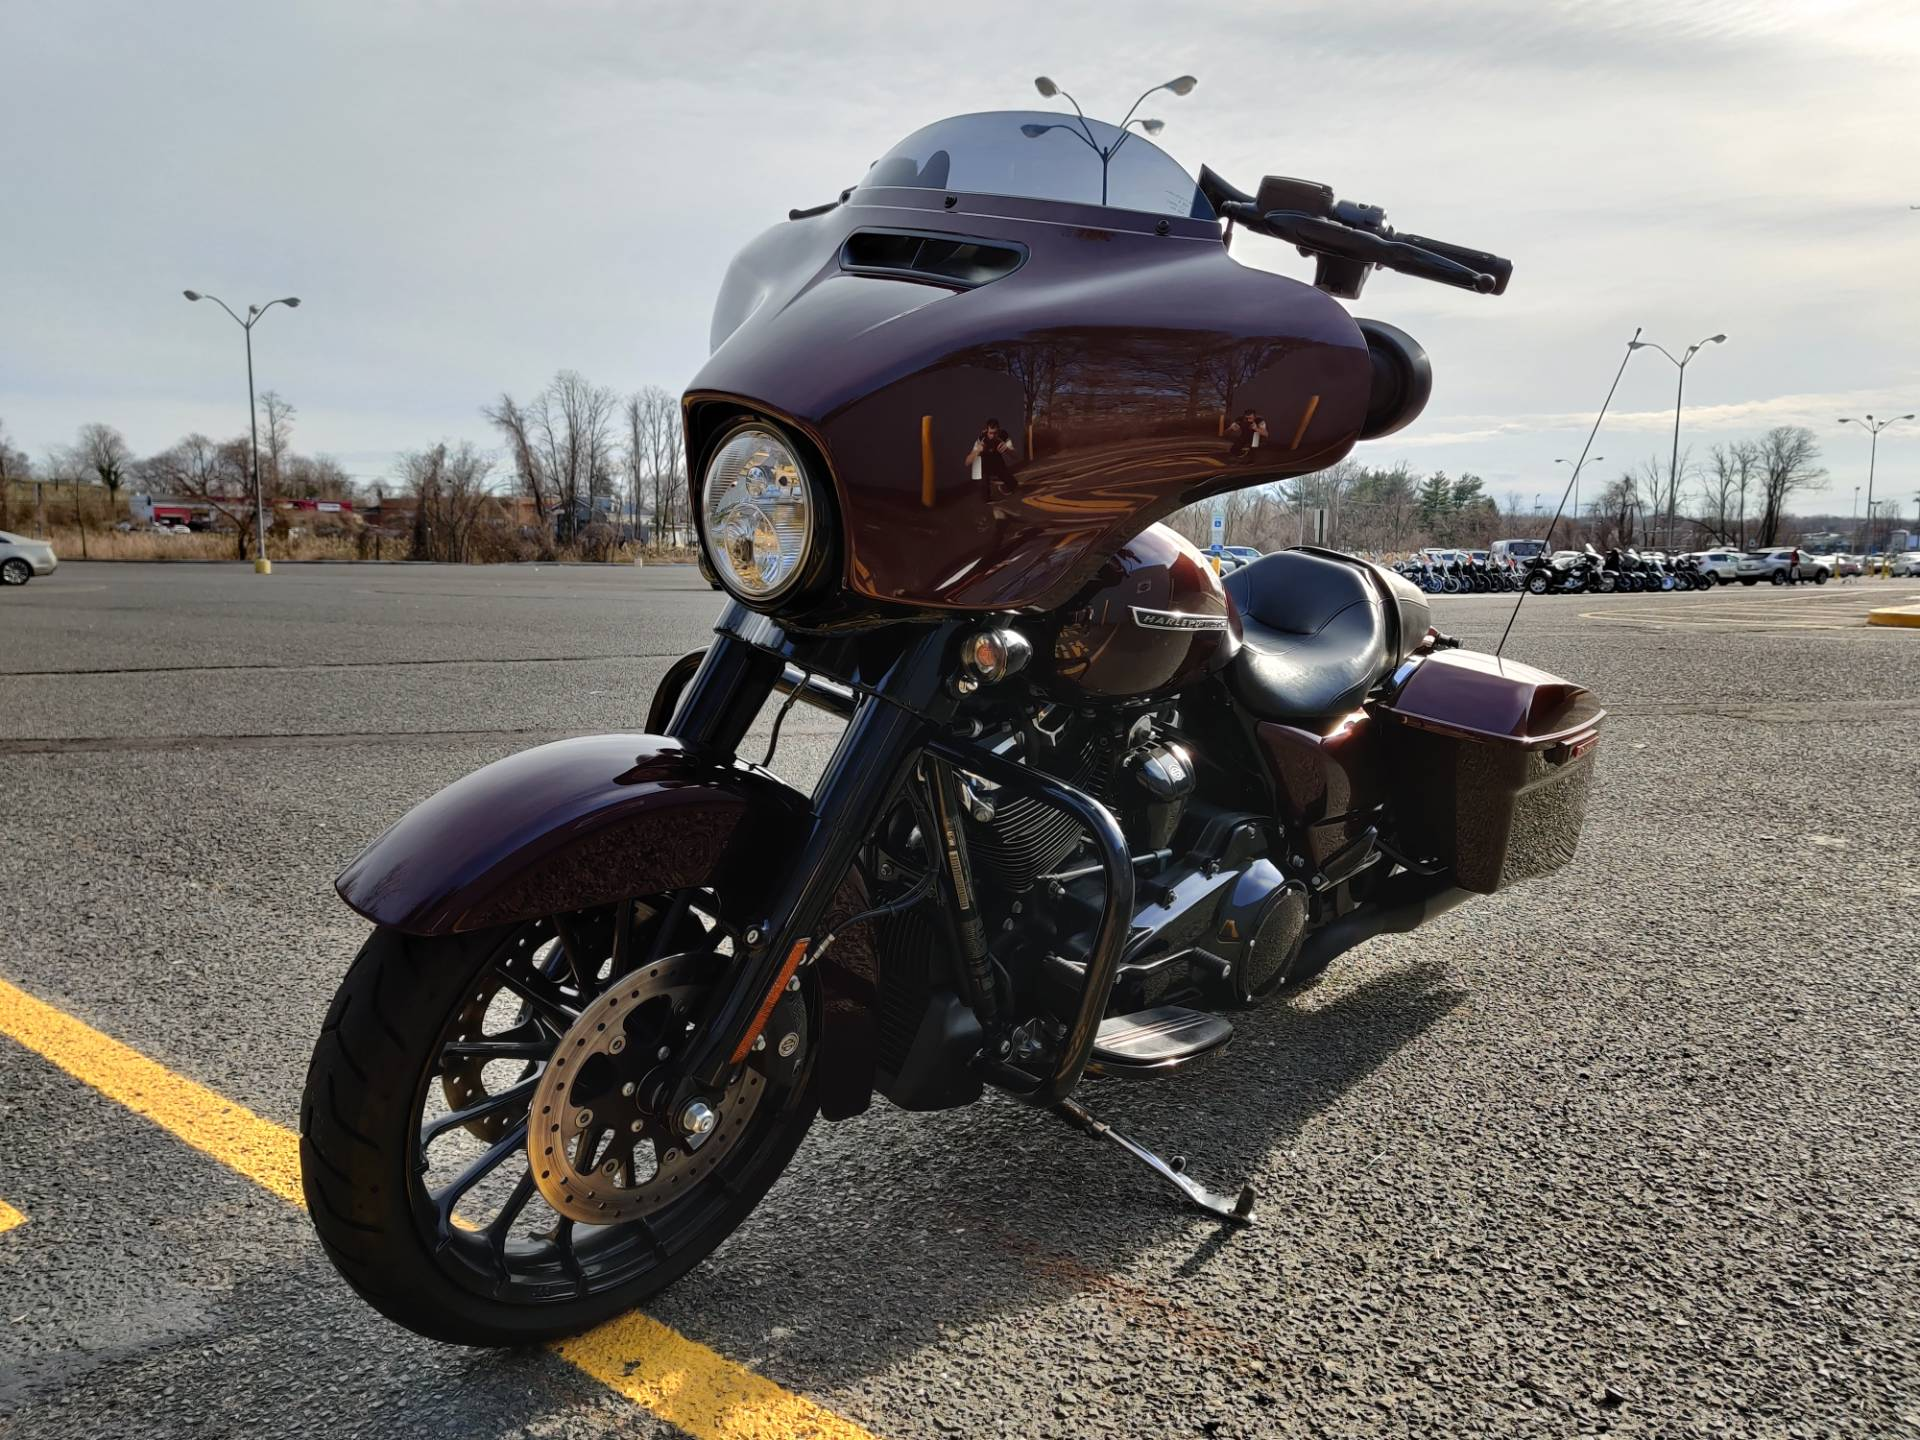 2018 Harley-Davidson Street Glide Special in West Long Branch, New Jersey - Photo 5